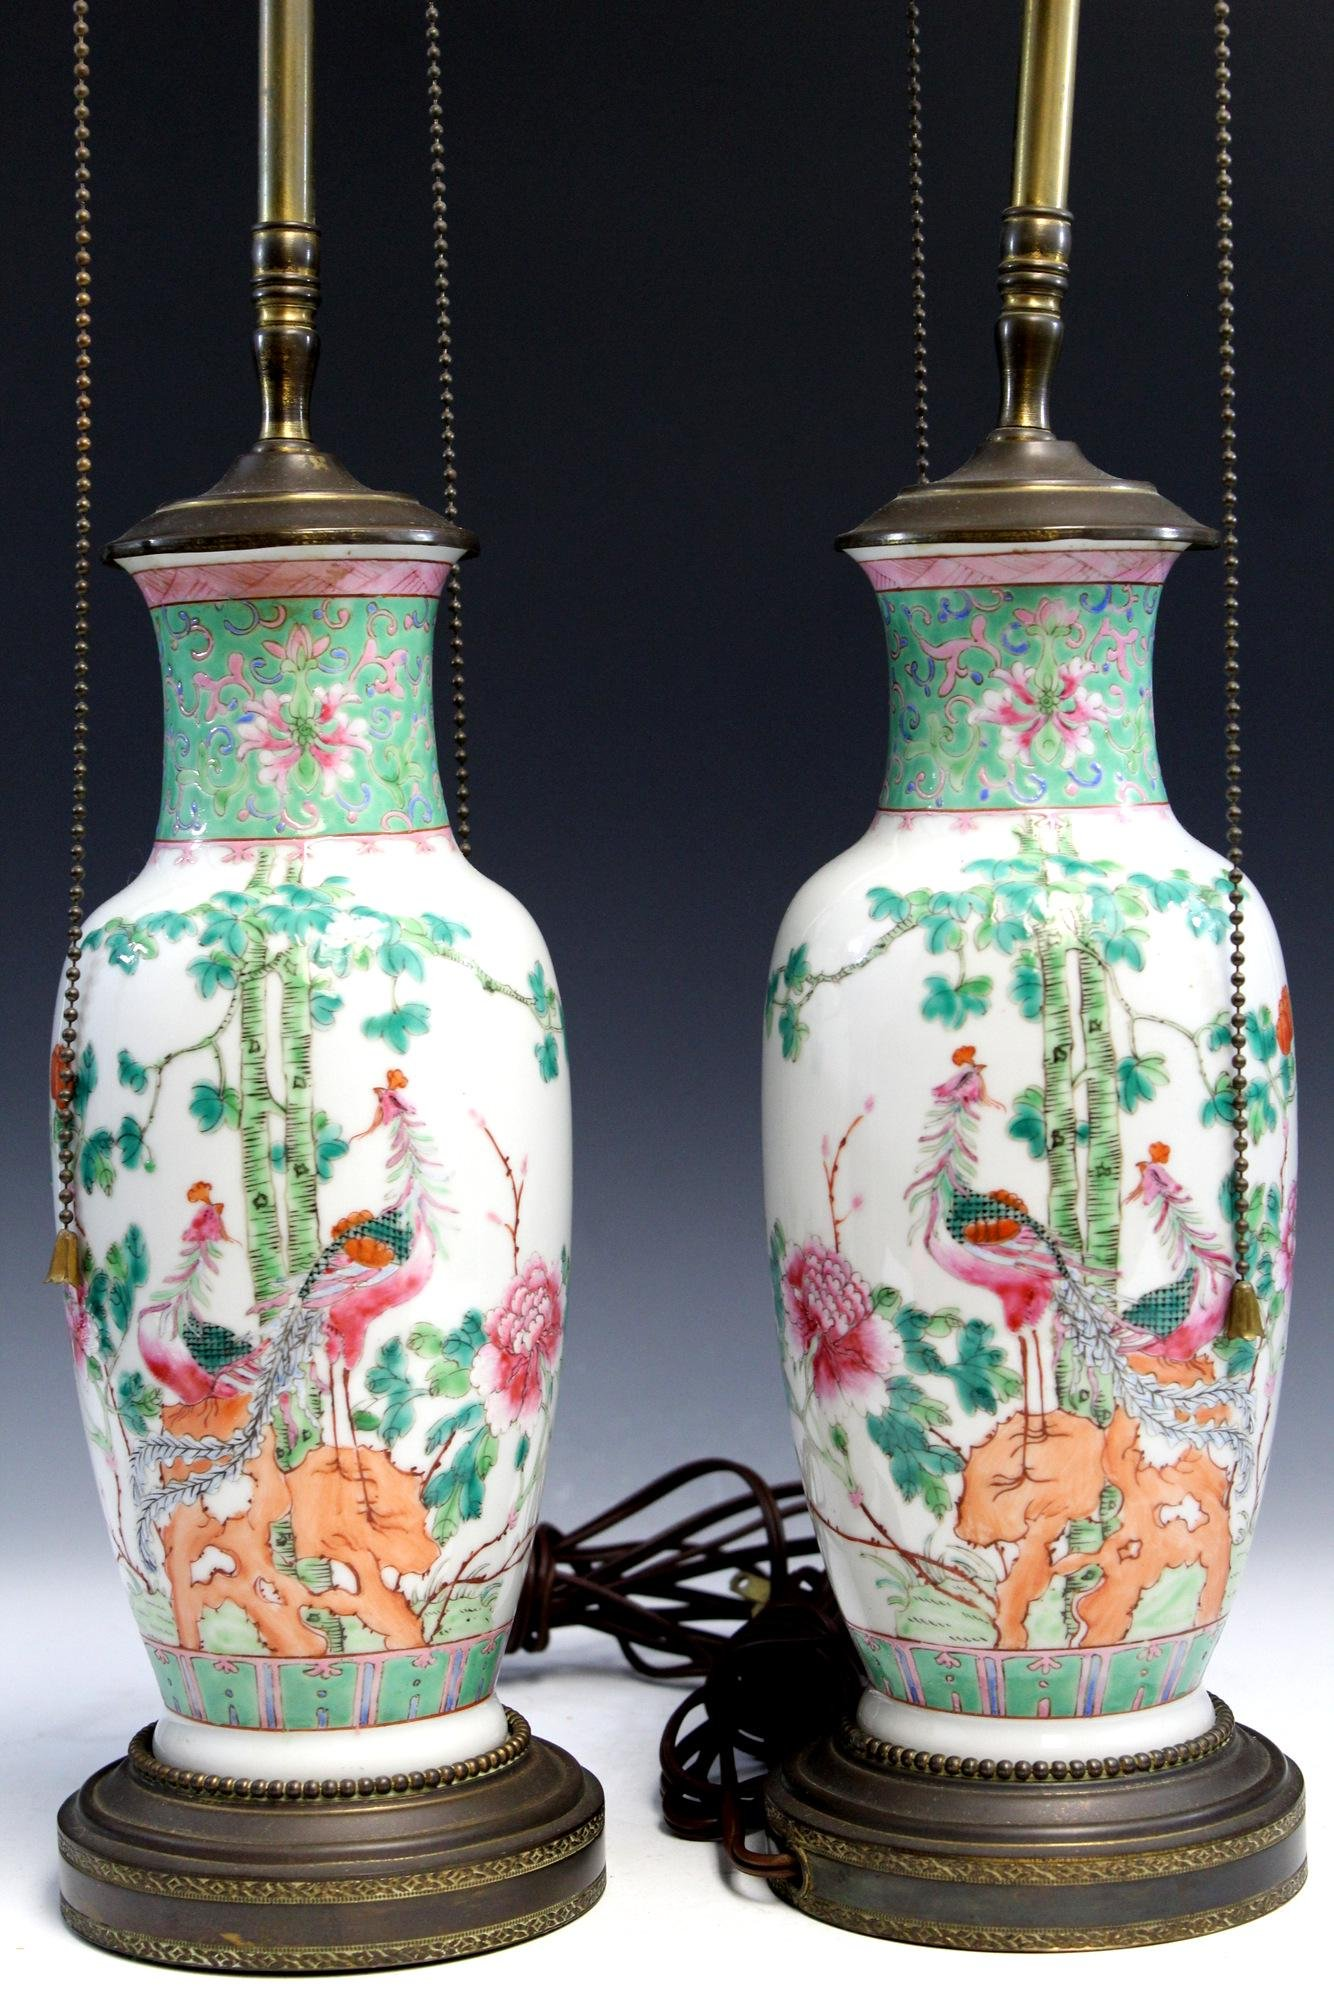 Pair of Chinese famille rose porcelain vases, made into